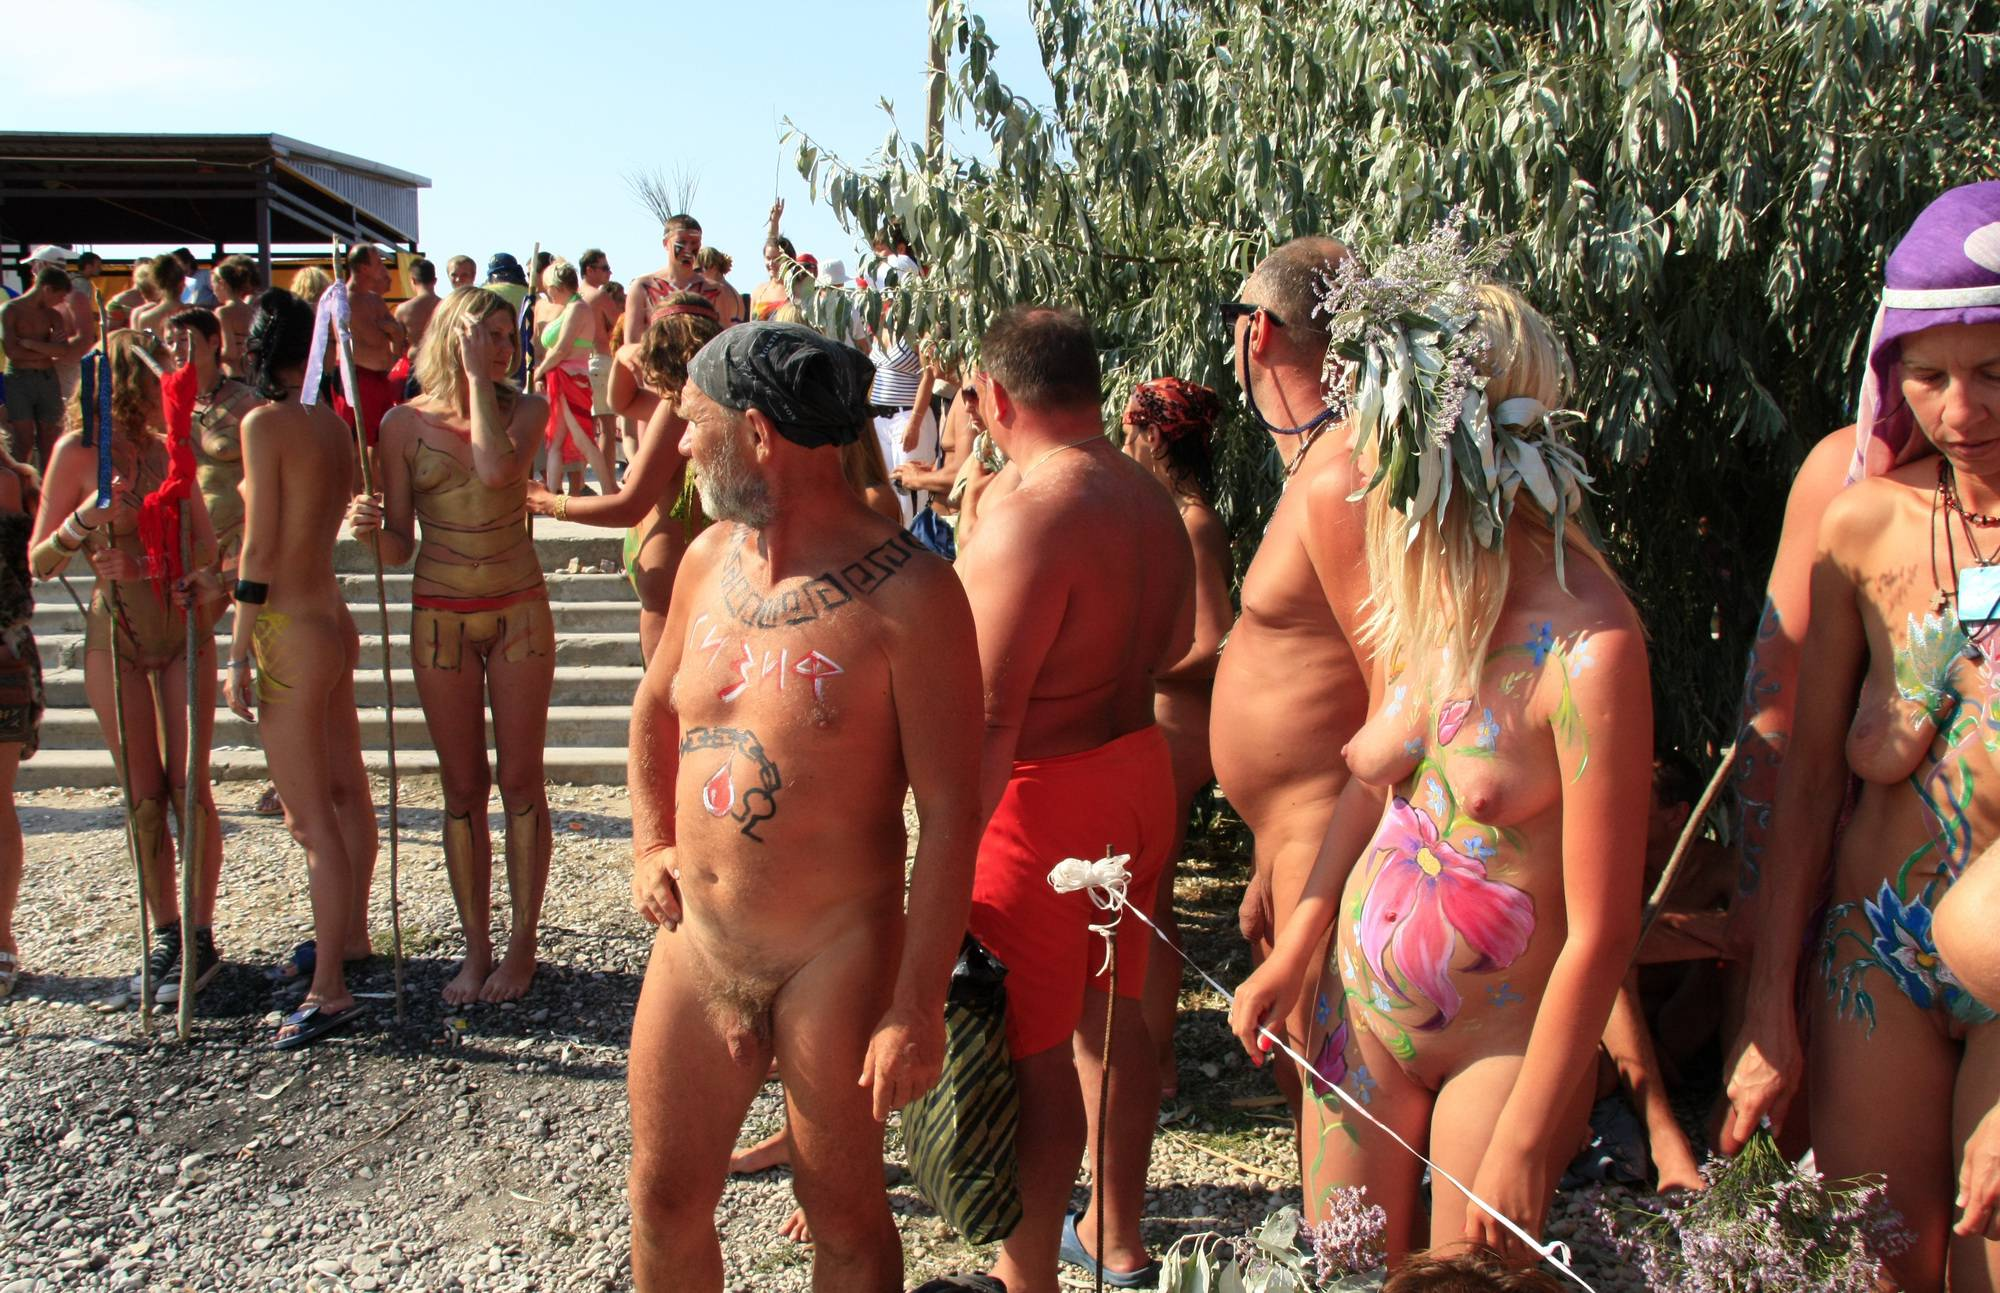 Pure Nudism-Strong and Bold We Stand - 1